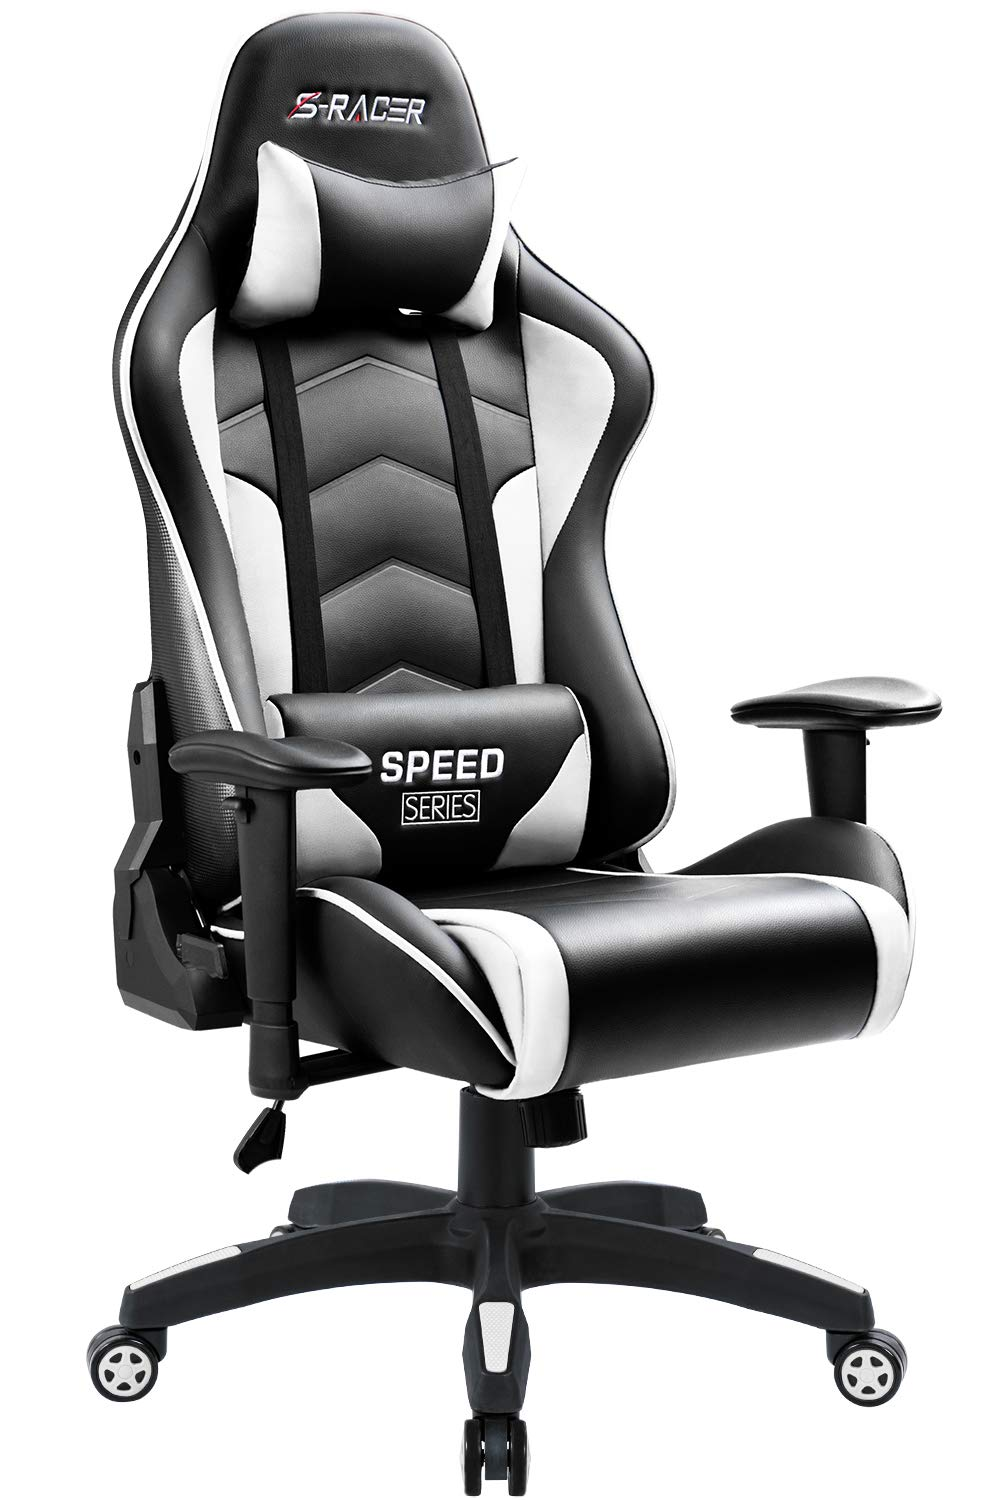 Marvelous Homall Gaming Chair High Back Computer Chair Racing Style Office Chair Embossing Design Pu Leather Bucket Seat Desk Chair With Adjustable Armrest Ncnpc Chair Design For Home Ncnpcorg